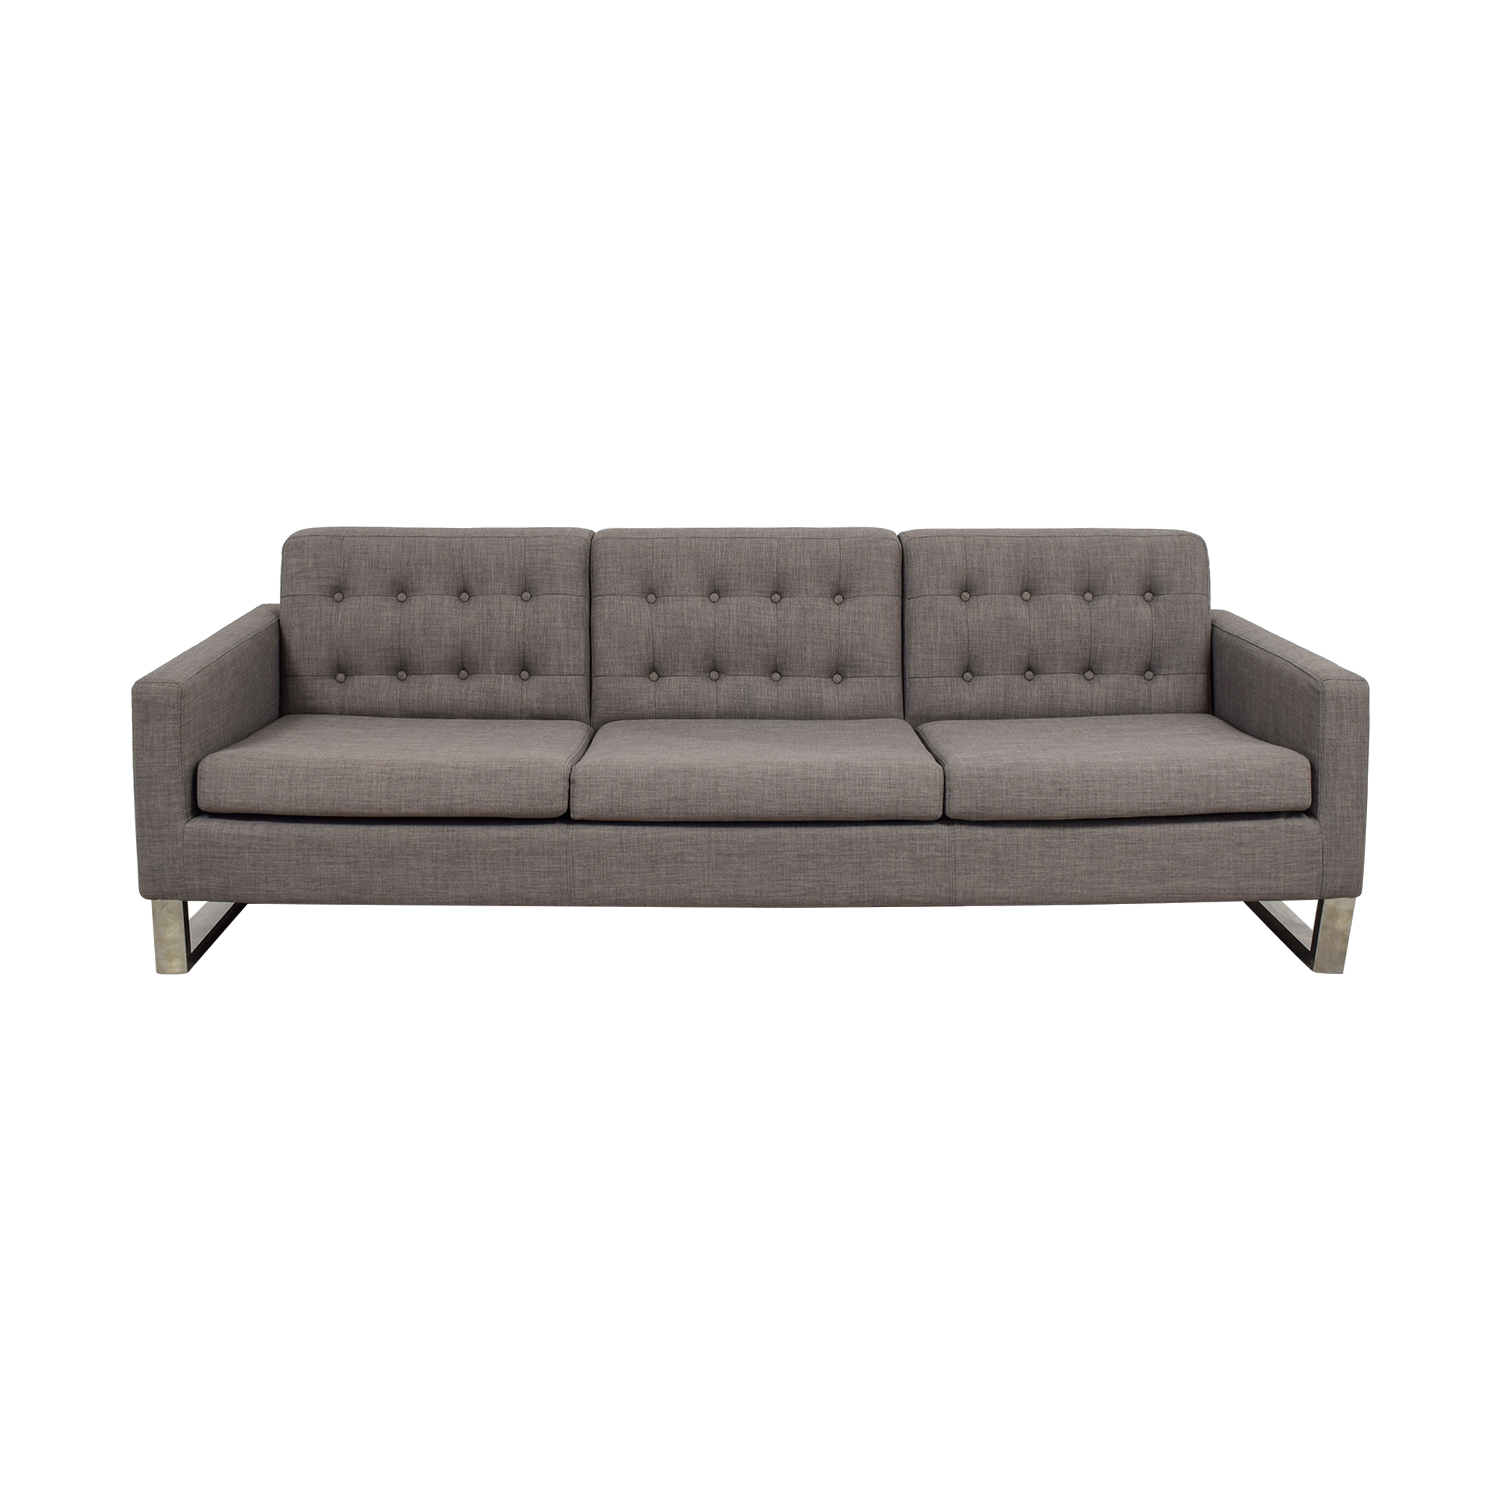 shop Pangea Sloan Grey Tufted Three-Cushion Sofa Pangea